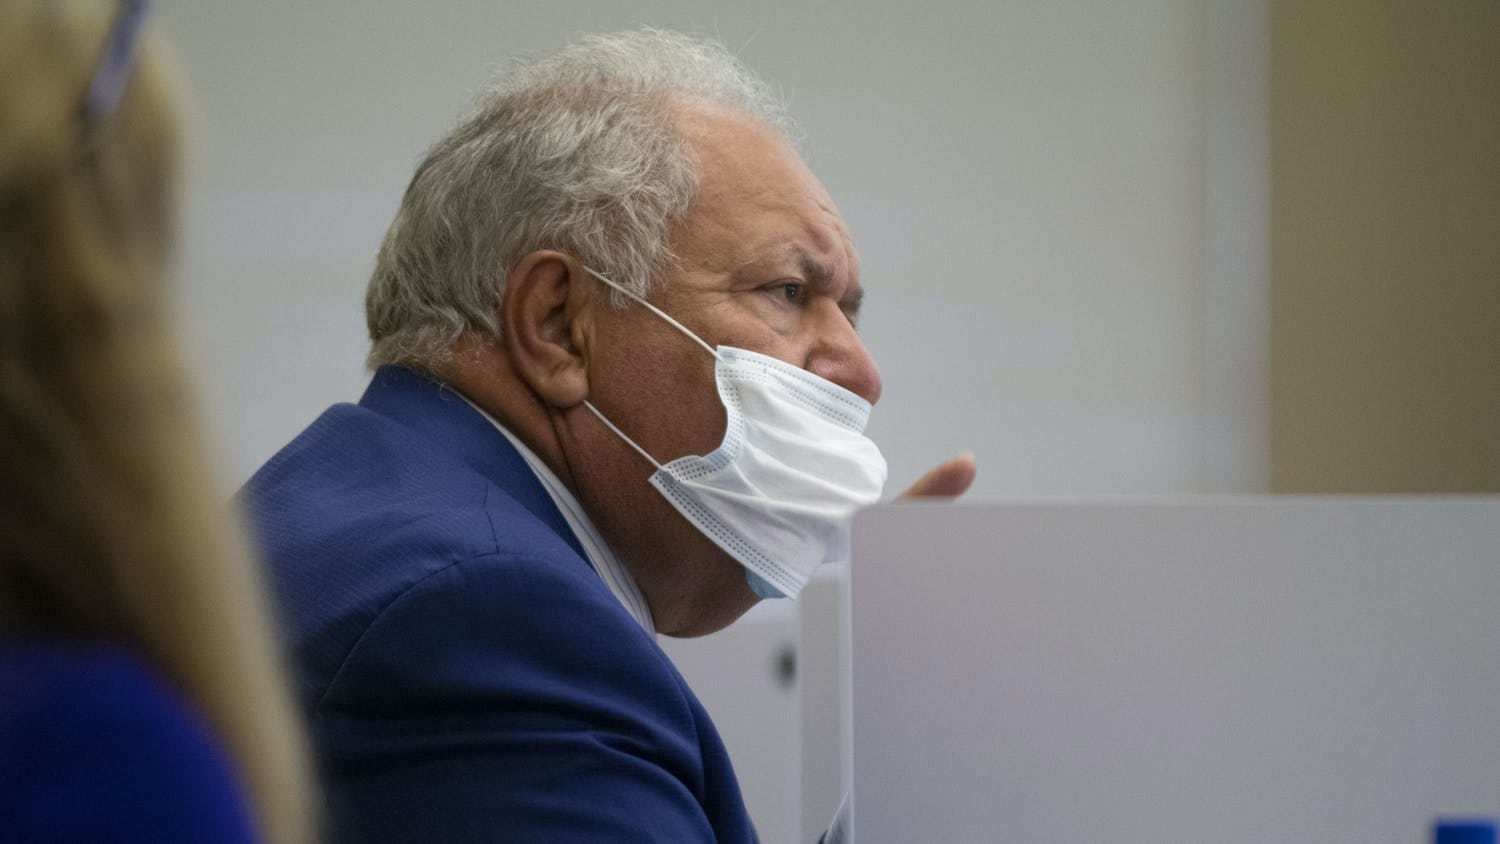 Chairman Mori Hosseini's mask slips down his face as he participates in the discussion after public comment. Later in the meeting, Hosseini removed his mask and talked at length while the board approved action items.